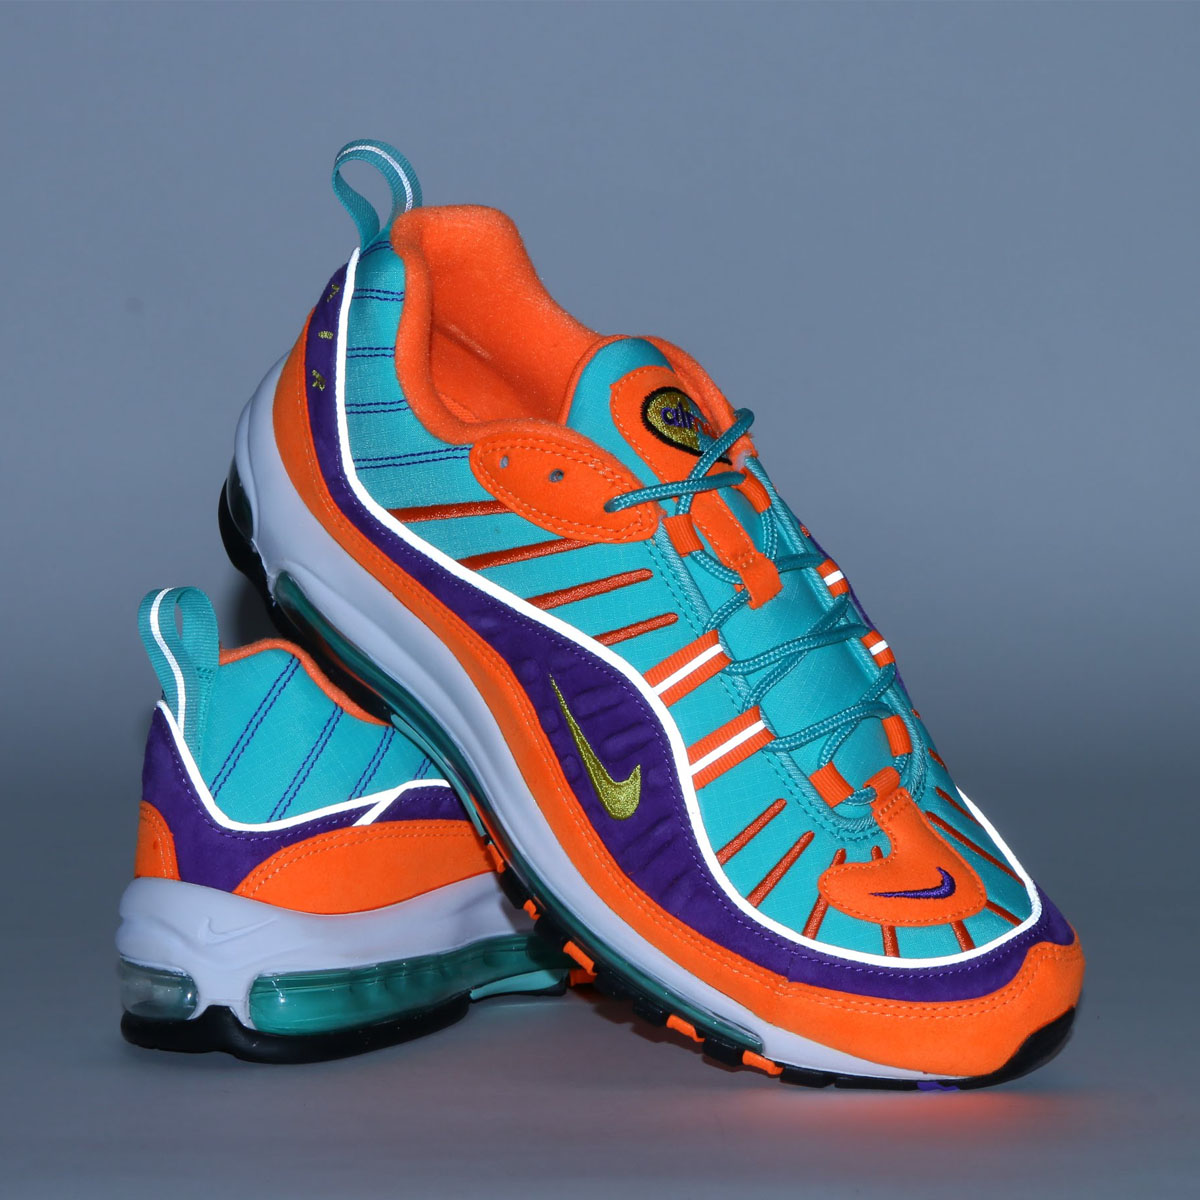 ccb405d81aa92c NIKE AIR MAX 98 QS (Kie Ney AMAX 98 QS) (CONE TOUR YELLOW-HYPER GRAPE)18SP-S